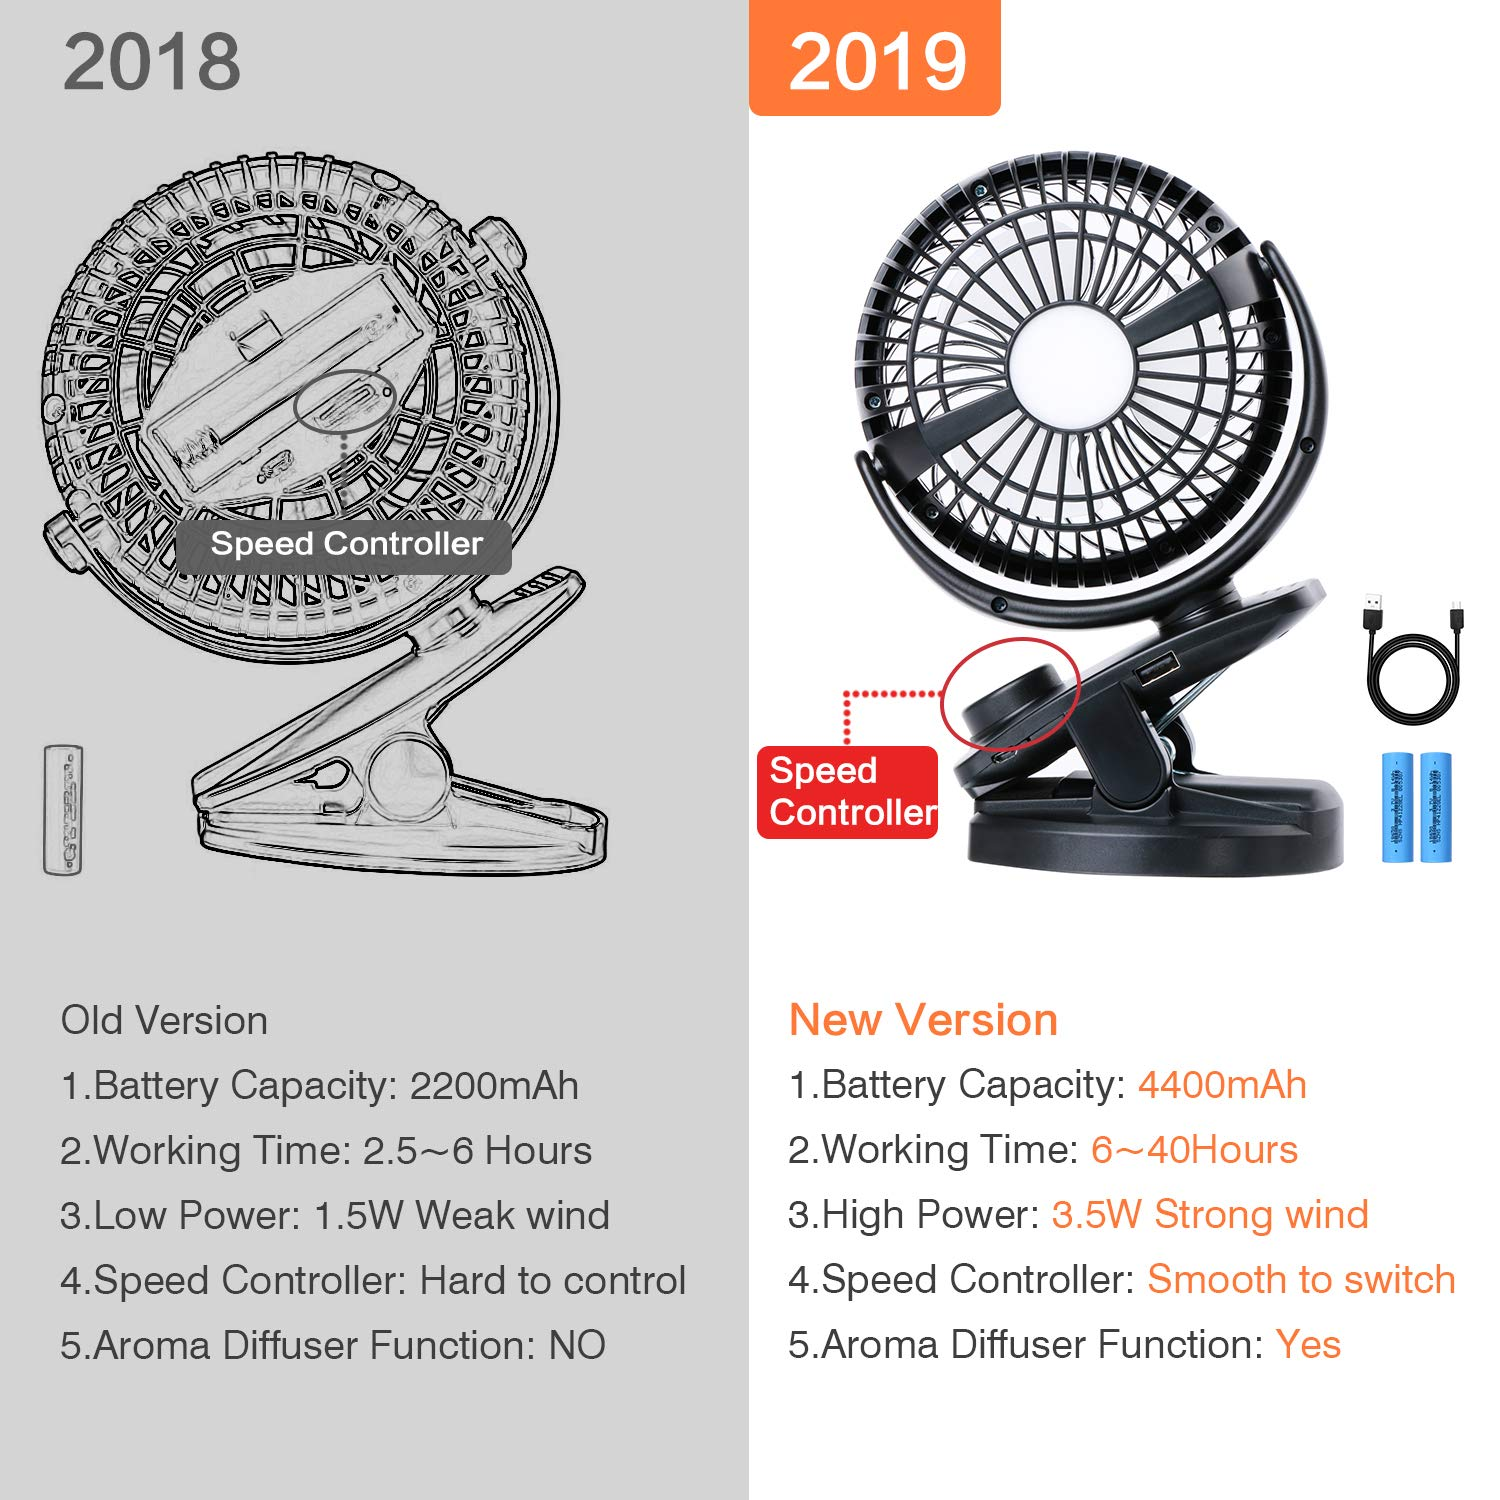 Max 40Hours Mini Portable Desk Fan with Rechargeable 4400mA Battery Powered Fan for Baby Stroller Outdoor Activities Battery Operated Clip on Stroller Fan